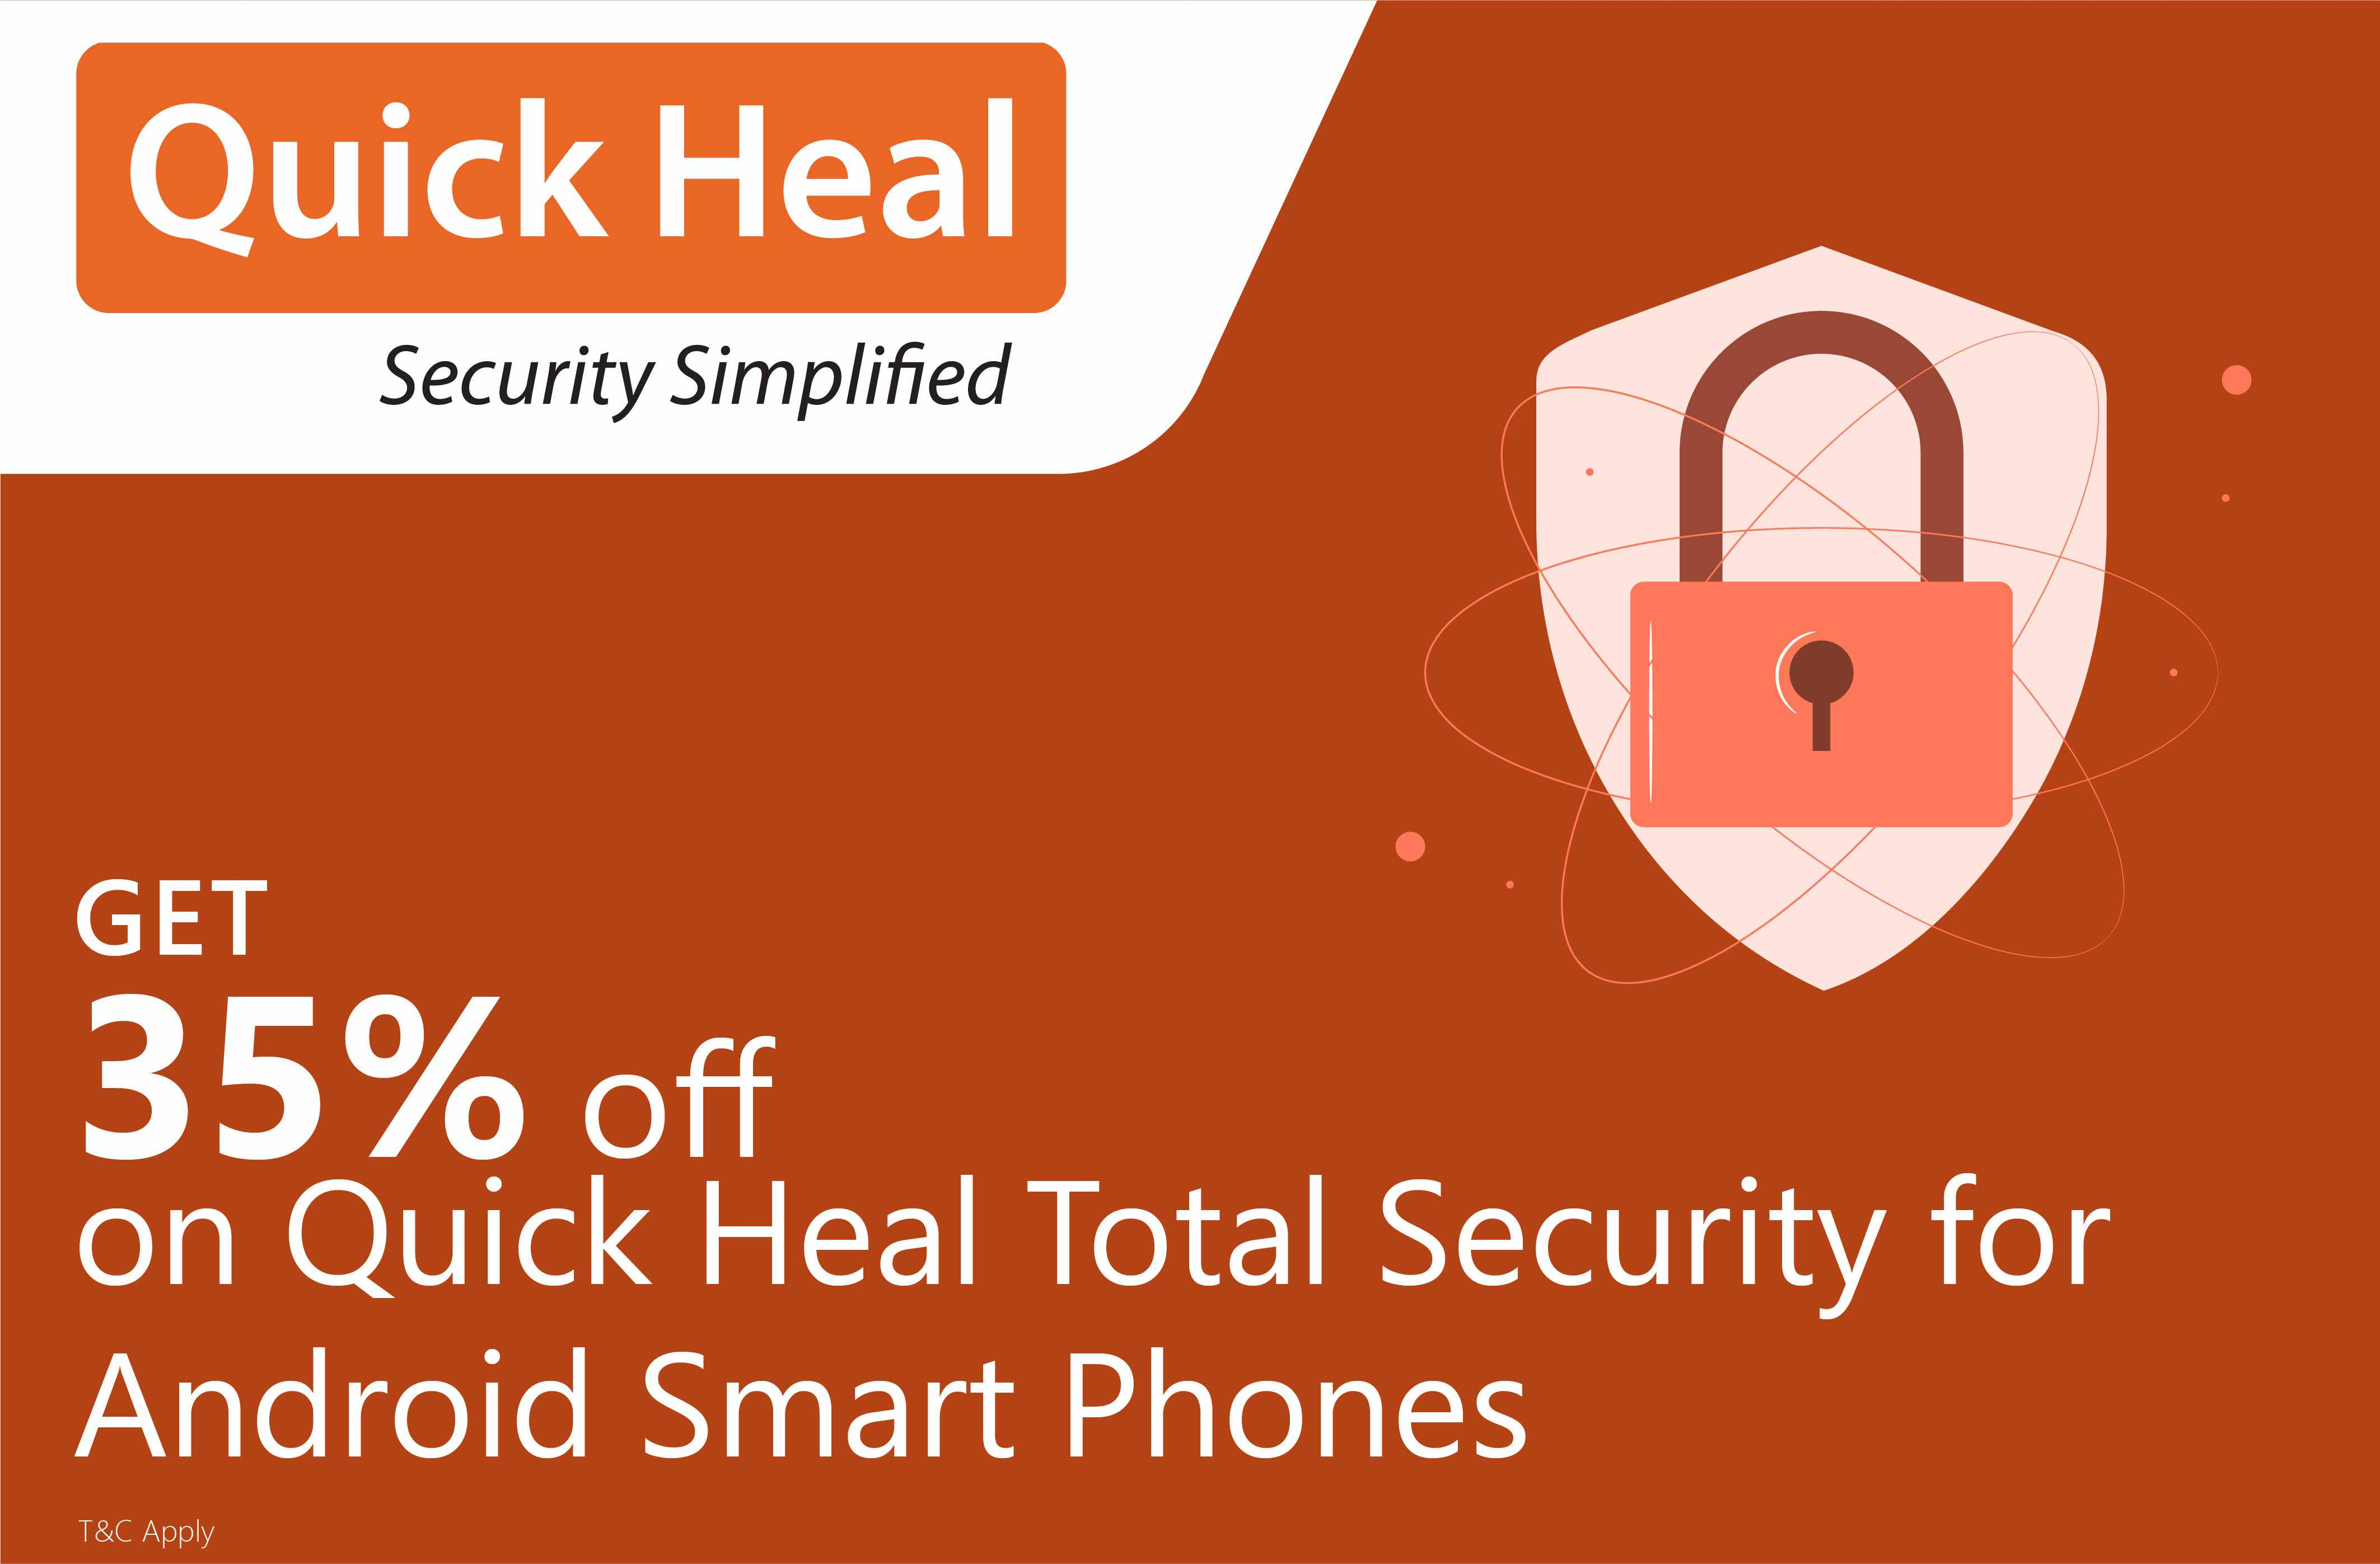 Get 35% off on Quick Heal Total Security for Android Smartphones